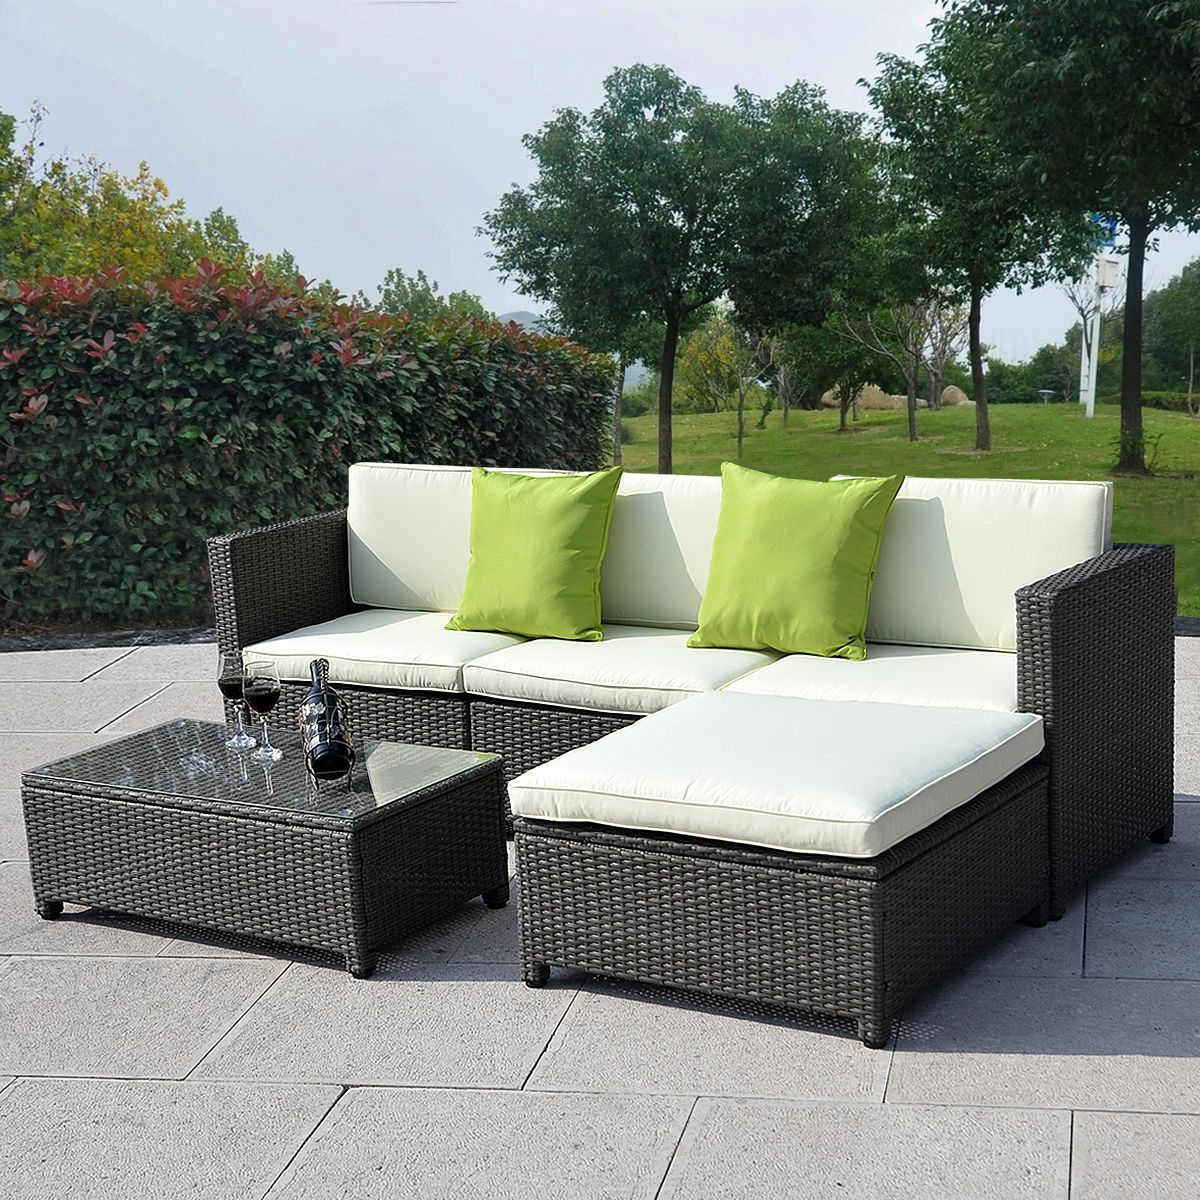 rattan outdoor sofa best price set patio wicker 5pc pe